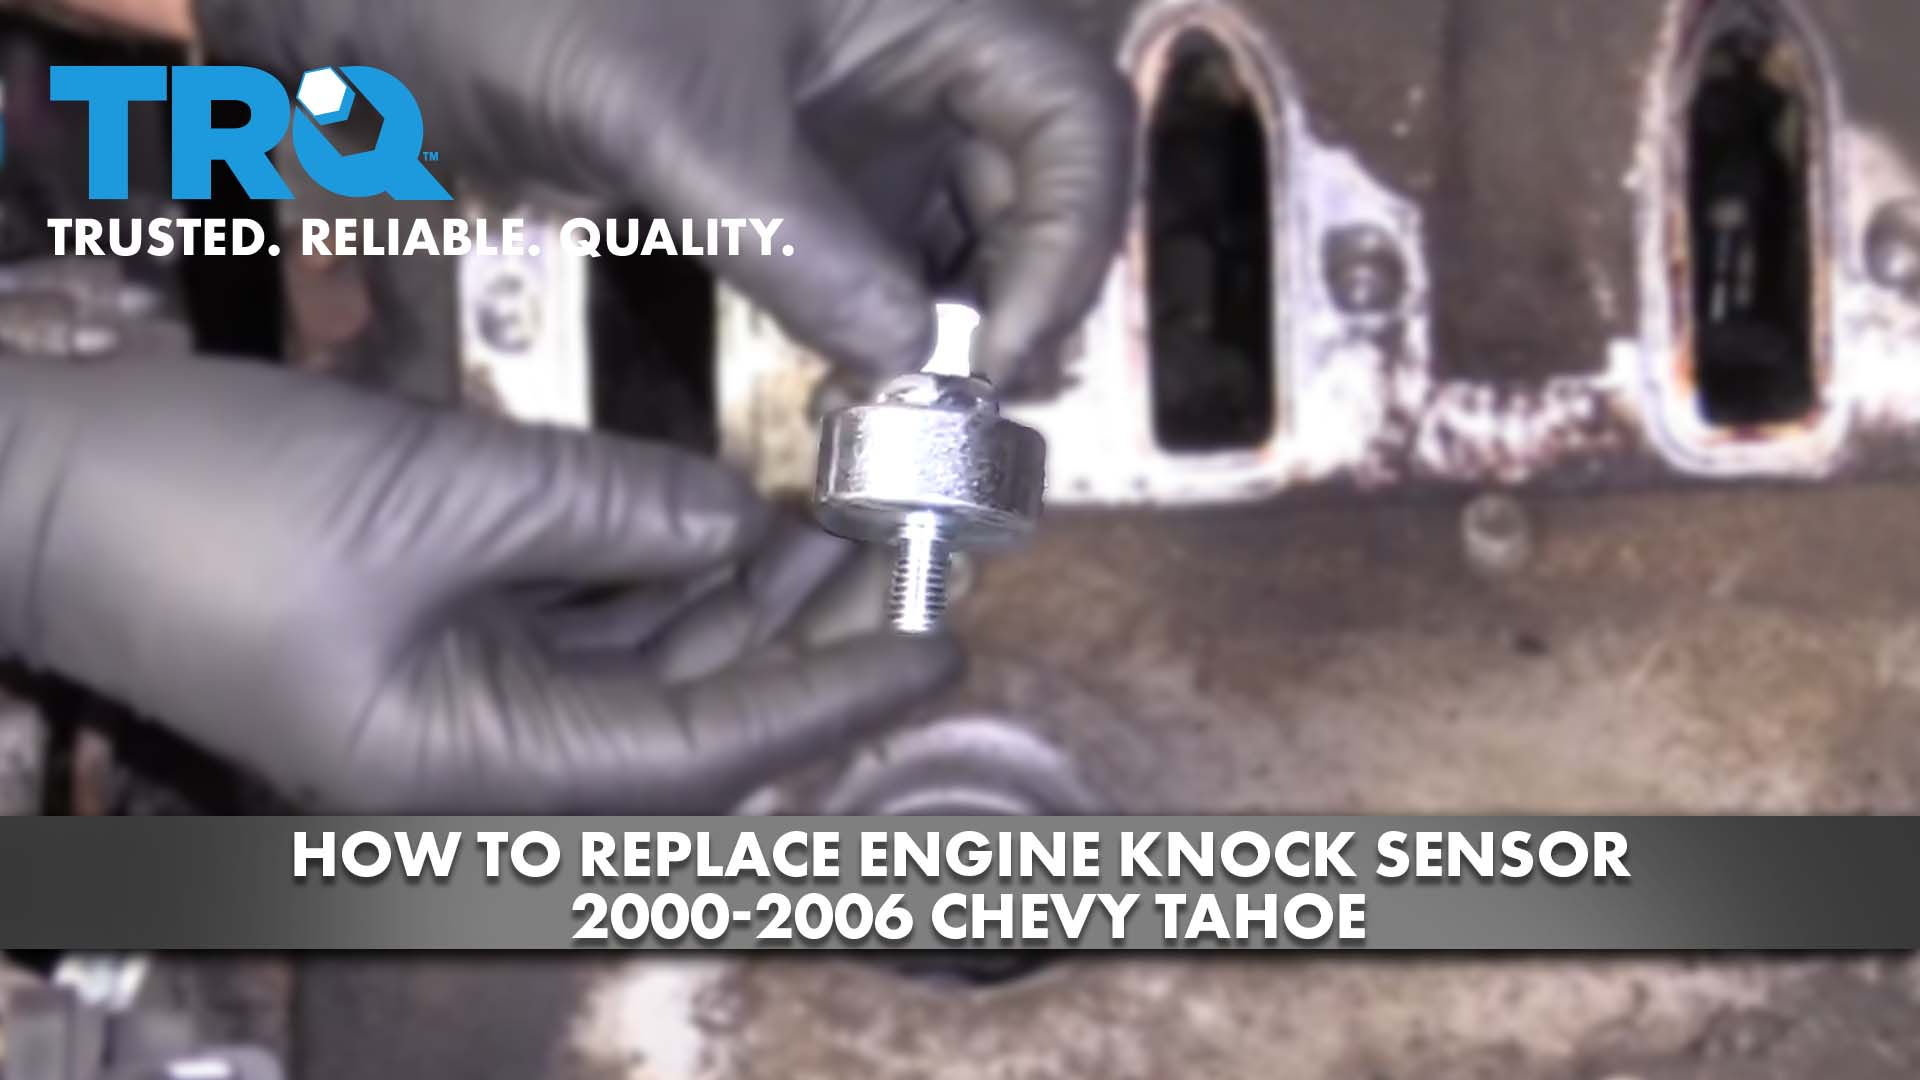 How To Replace Engine Knock Sensor 2000-06 Chevy Tahoe